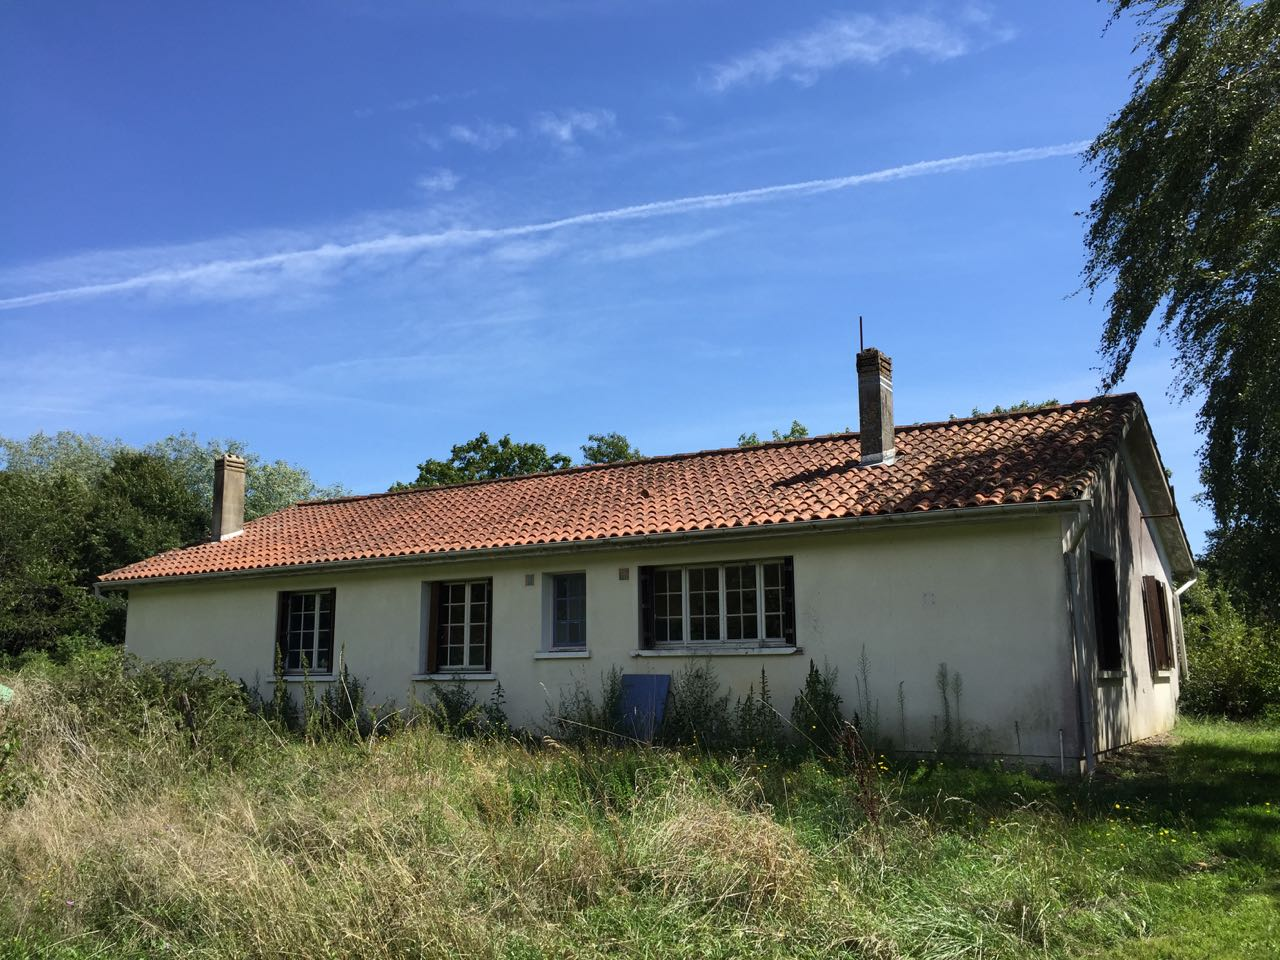 Looking for Caretaker Couple (from May 2019): Estate in French Cognac Region